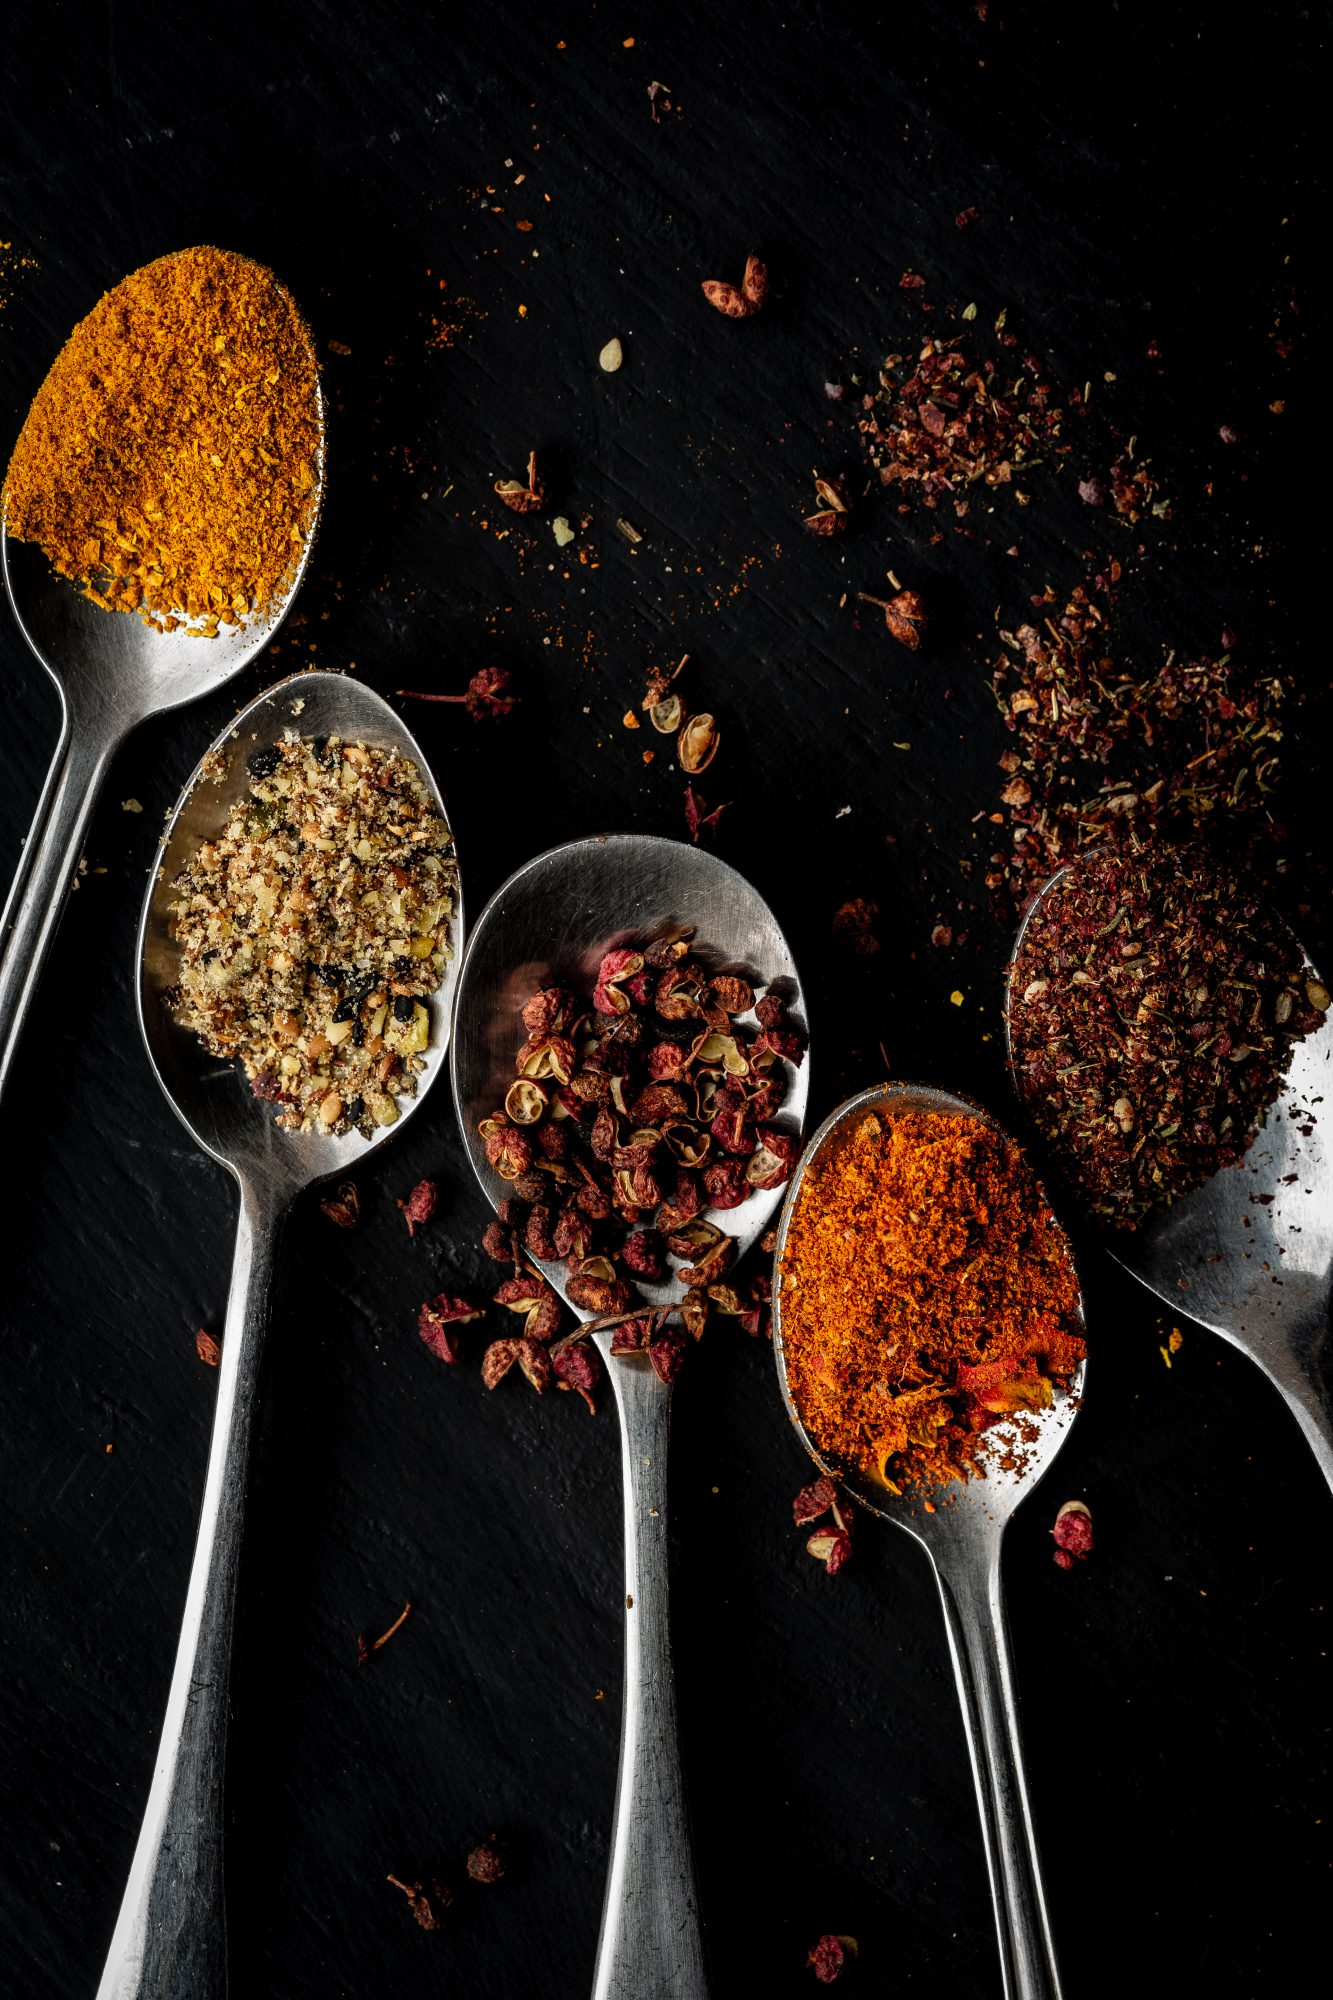 Seven Spice Blends That Are Worth Buying